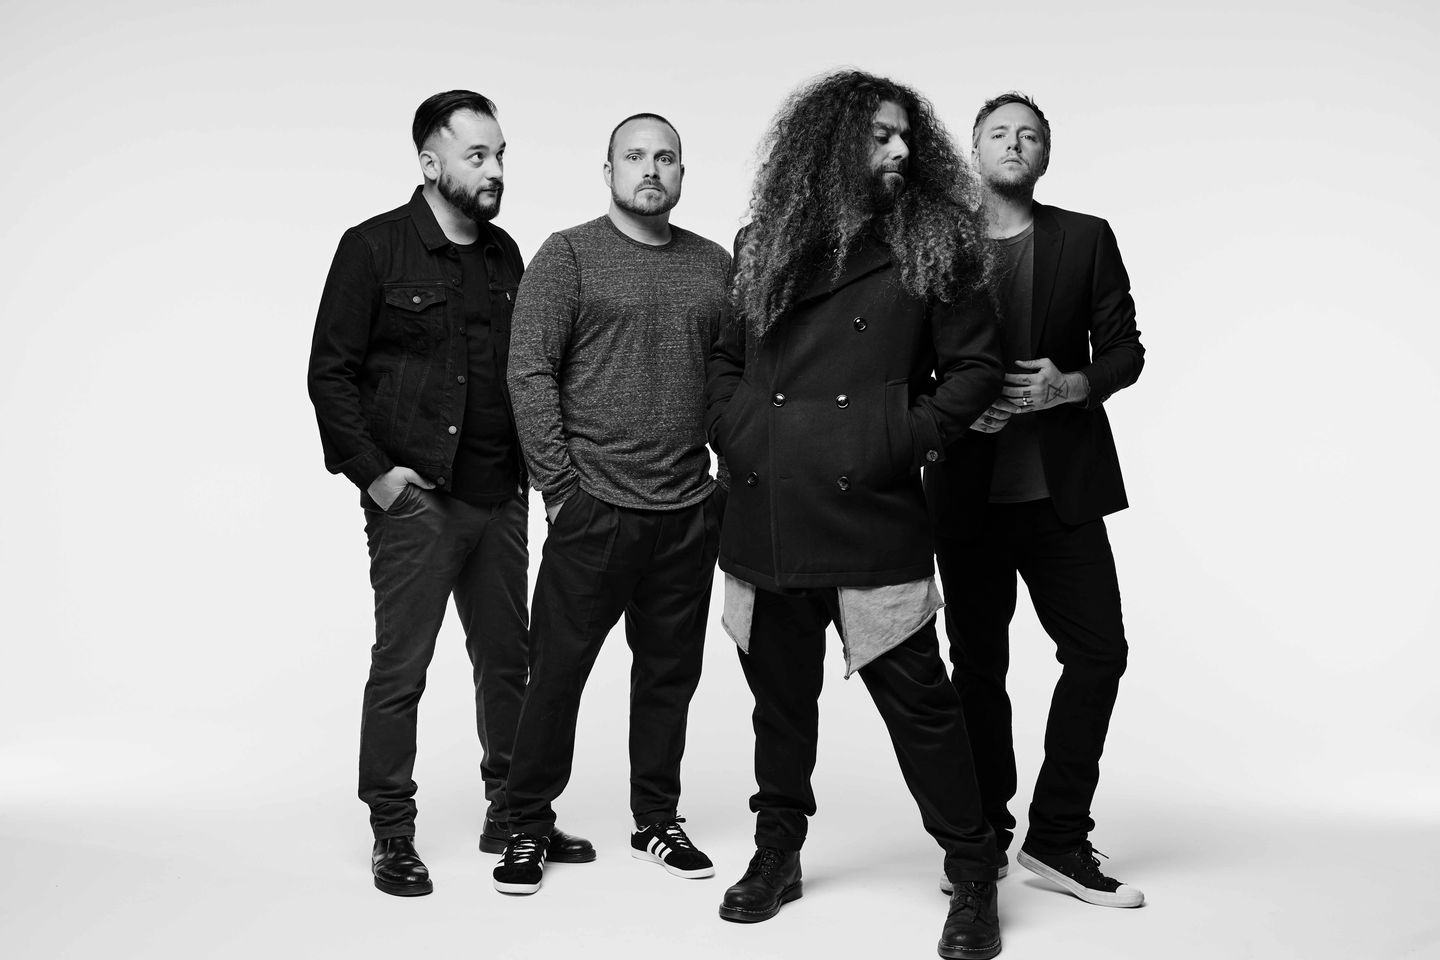 coheed-and-cambria-new-pub-2-2018-jimmy-fontaine-lo.jpg